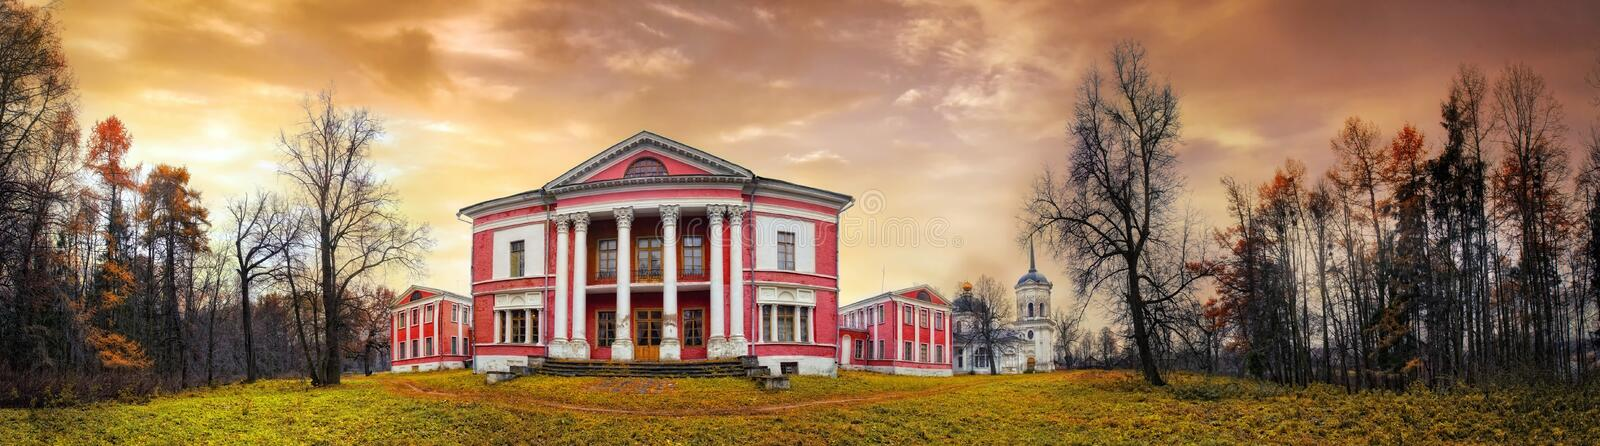 The russian estate royalty free stock photos